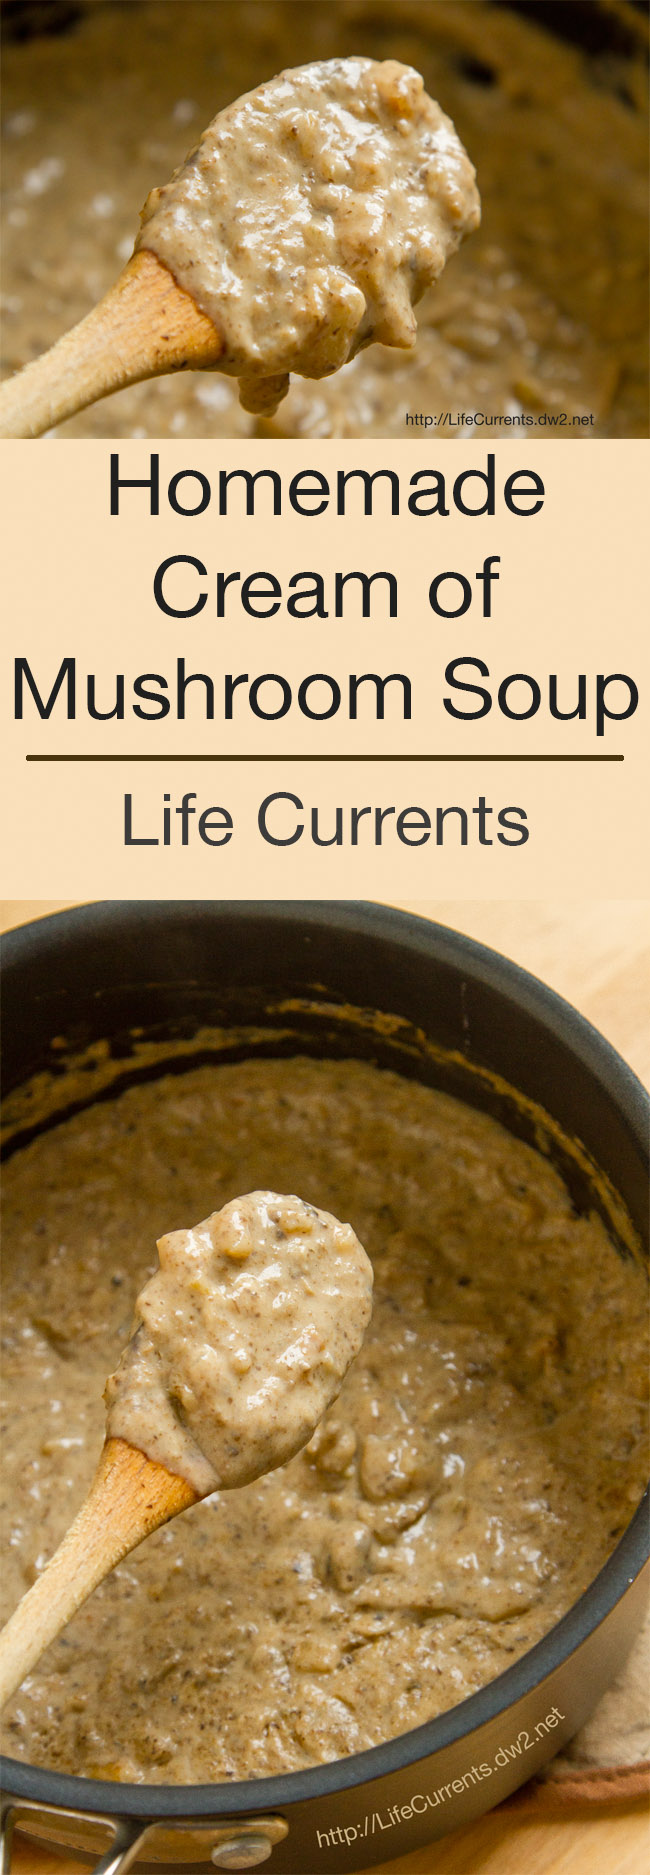 Homemade Cream of Mushroom Soup Recipe long pin for pinterest with two images and a title